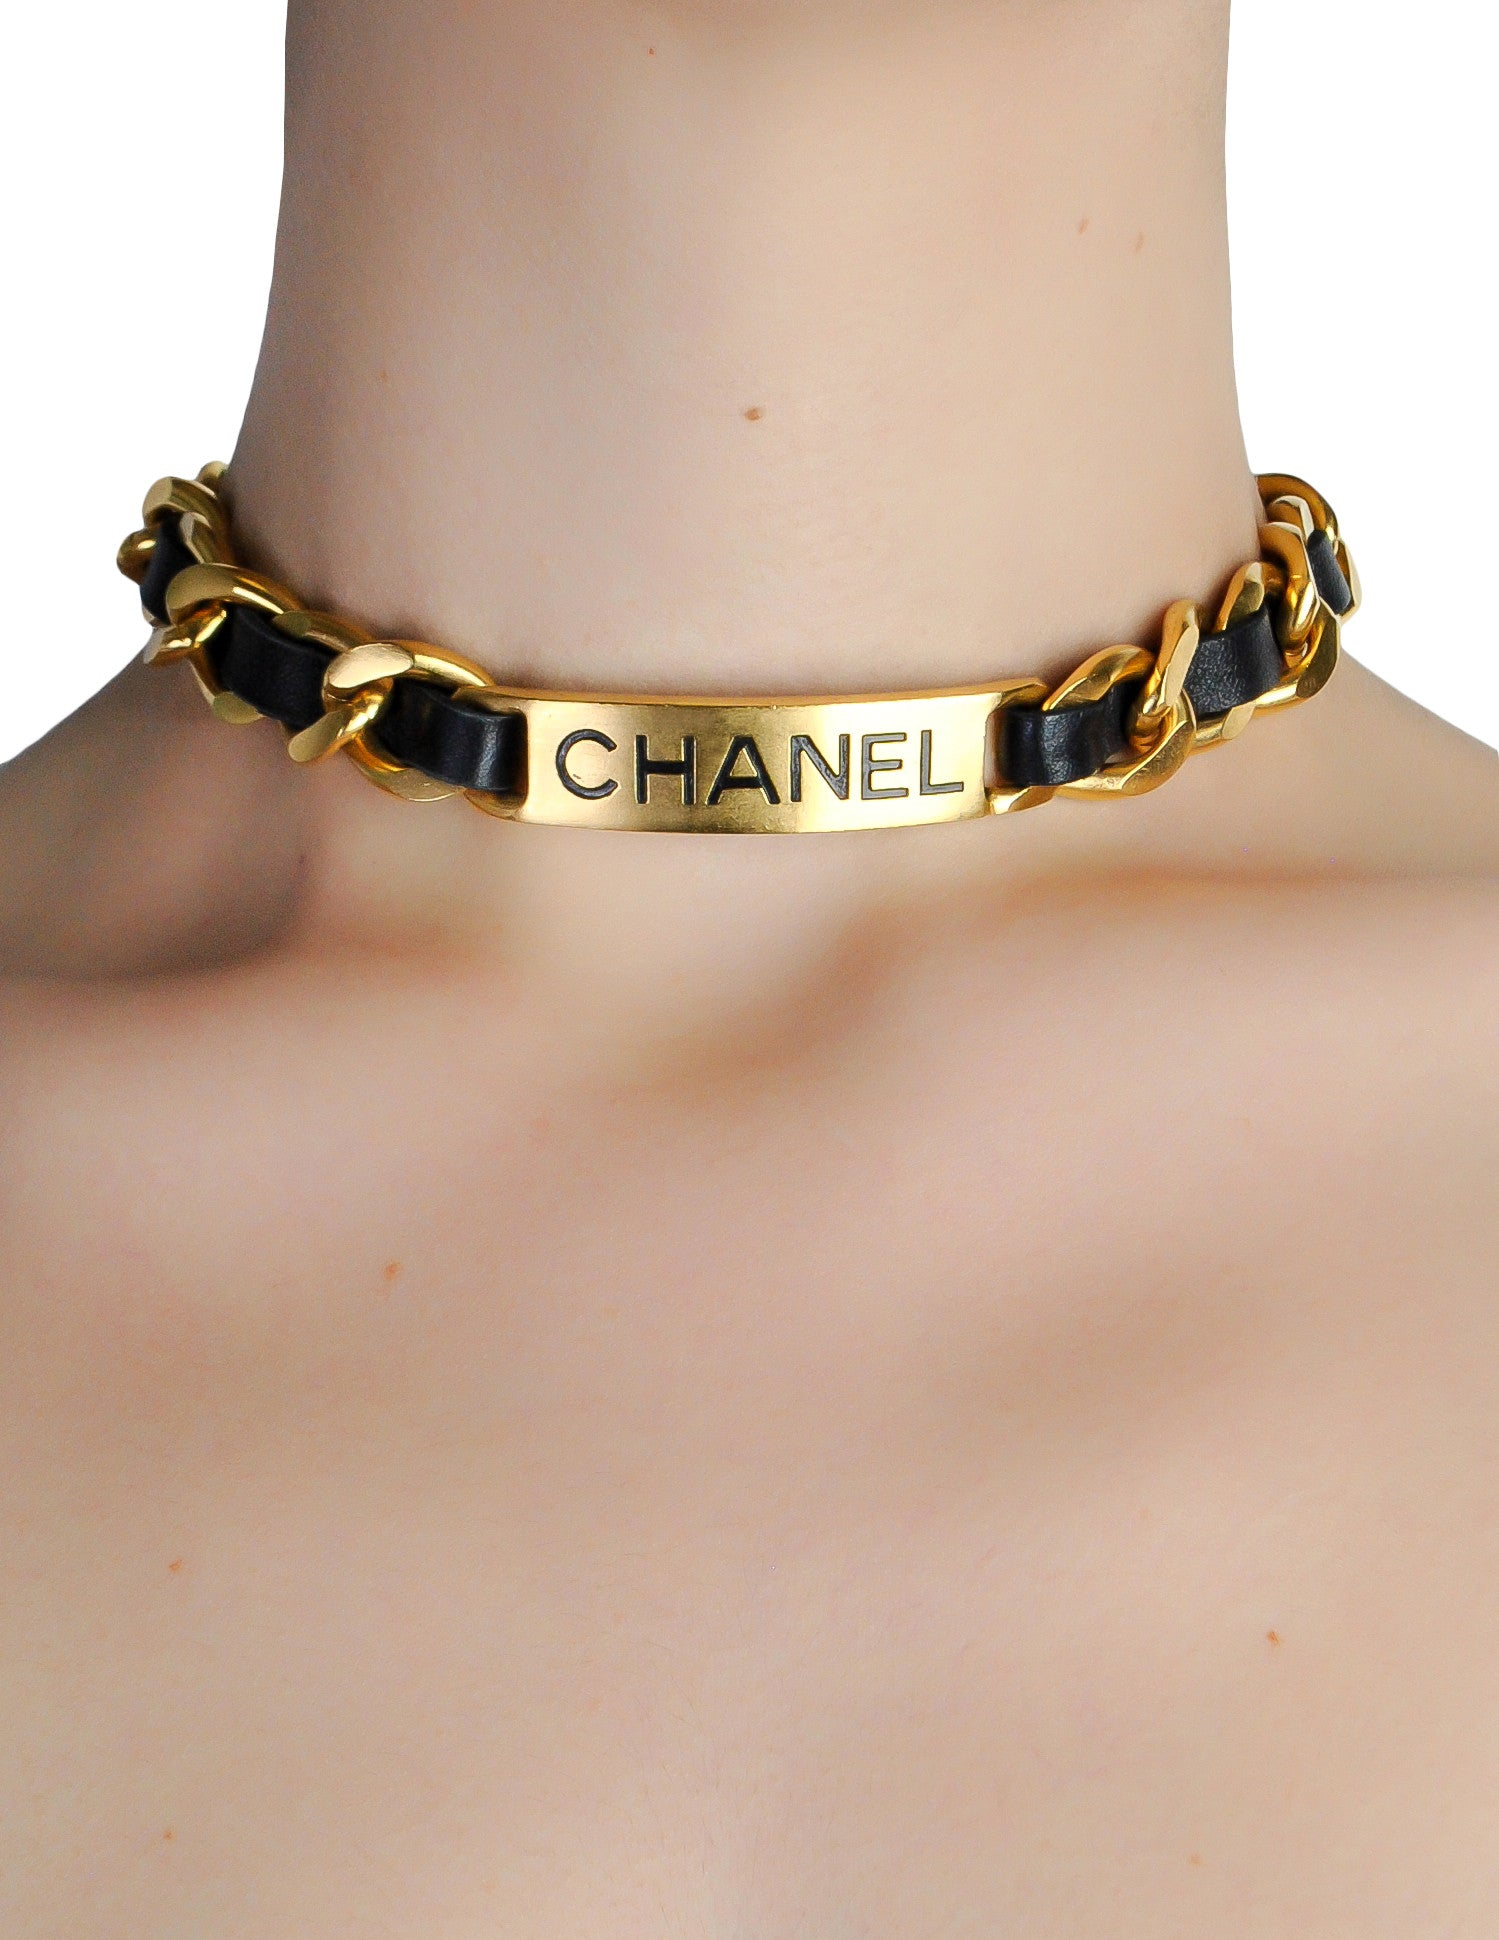 Chanel Vintage Gold Chain & Black Leather ID Tag Nameplate Choker Necklace - Amarcord Vintage Fashion  - 1